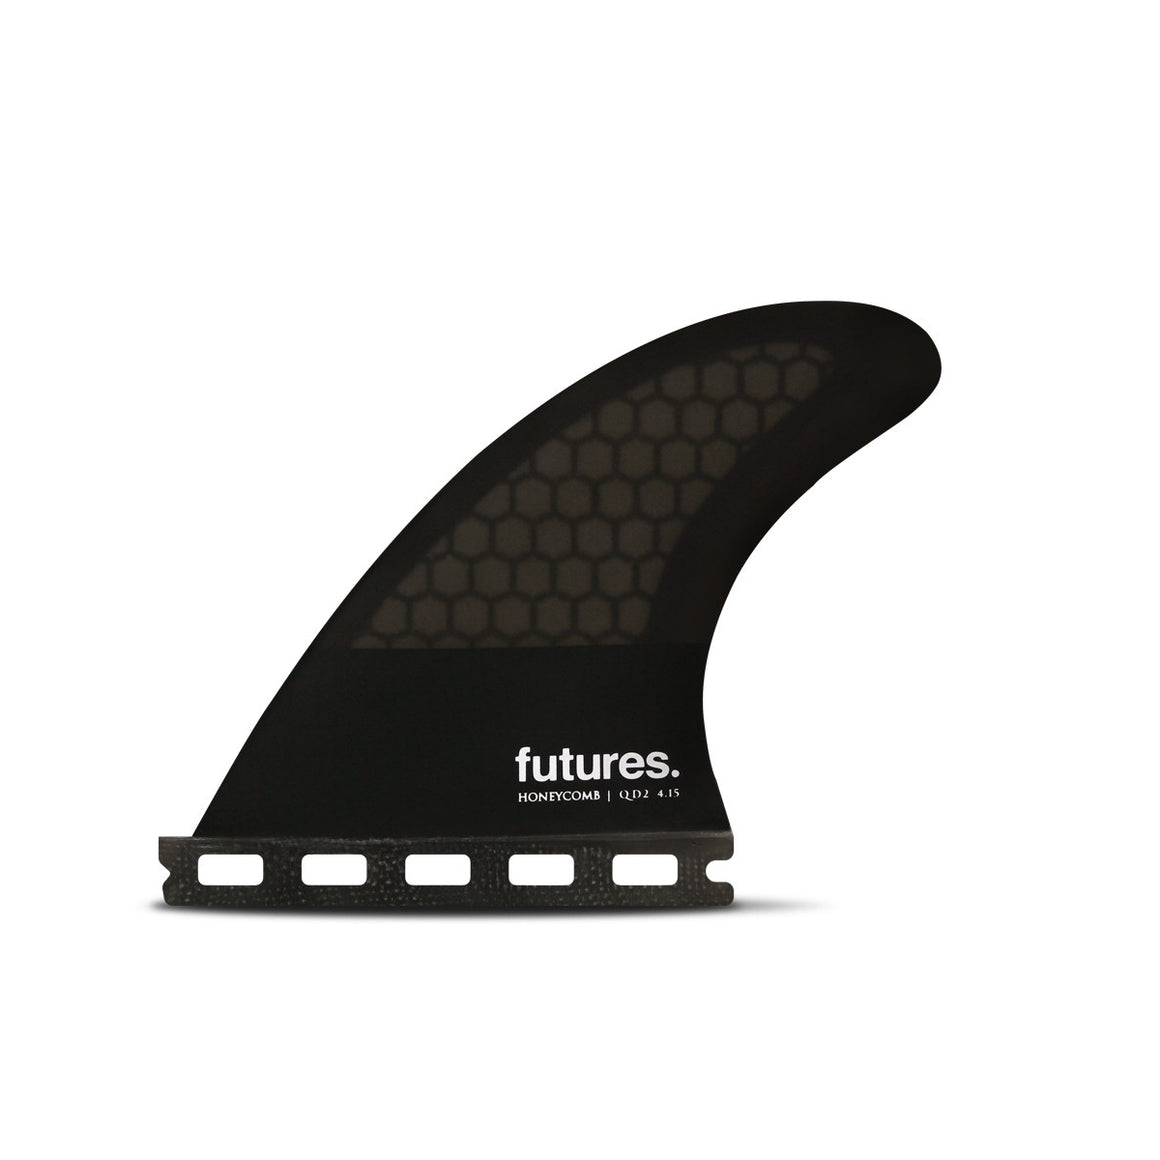 FUTURES QUAD TRAILERS (2 FIN SET) - QD2 QD2 4.15 Honeycomb - Smoke/Black/White